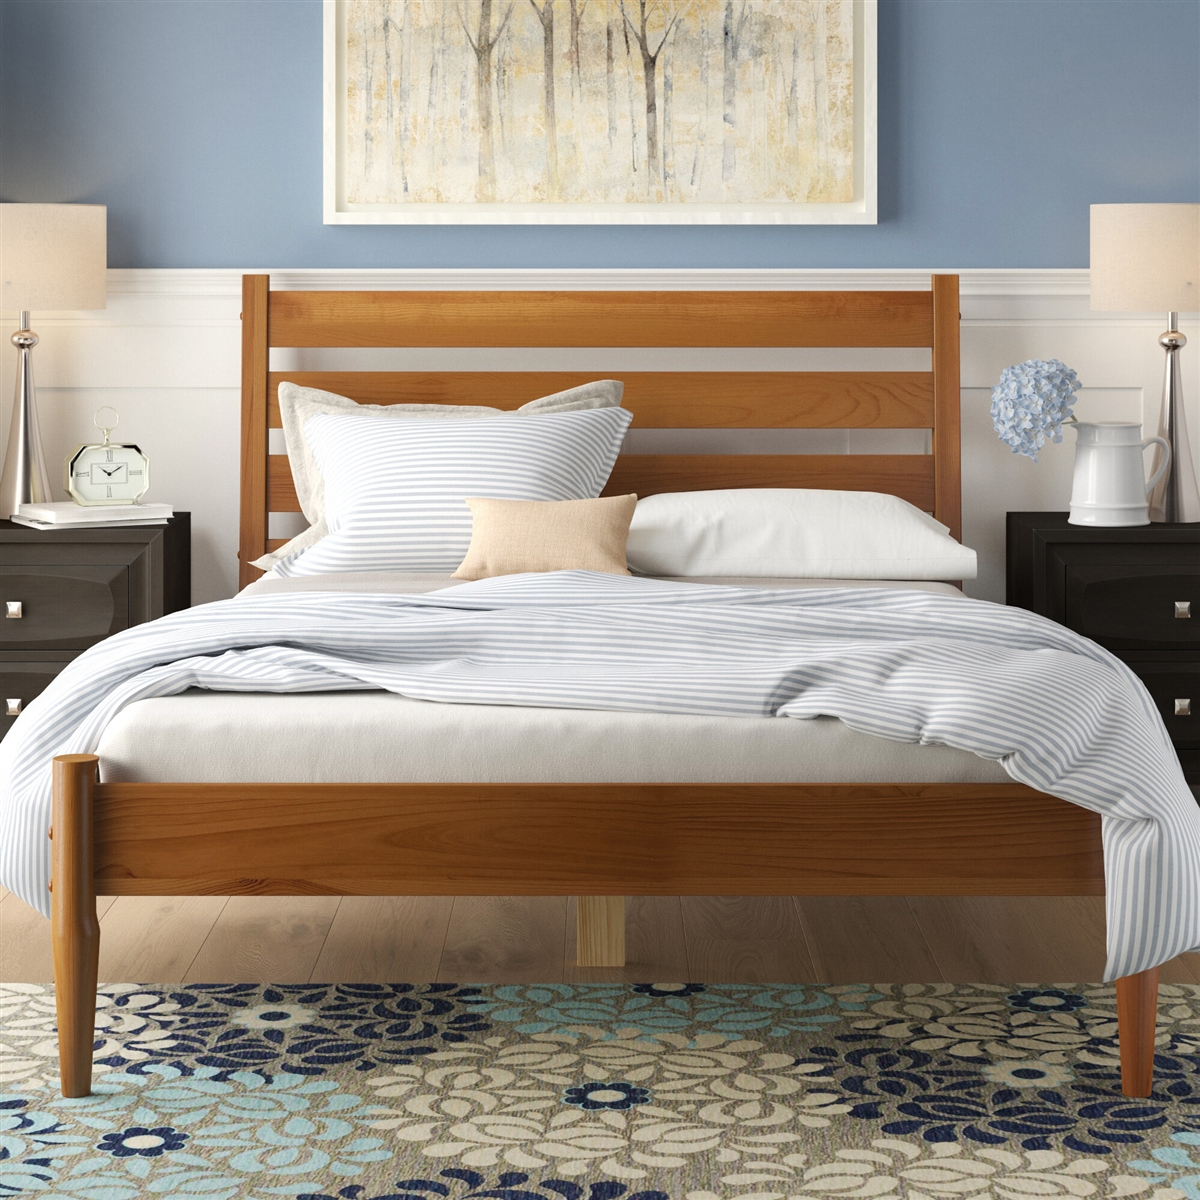 Image of: Mid Century Platform Bed Queen Size Castanho Finish